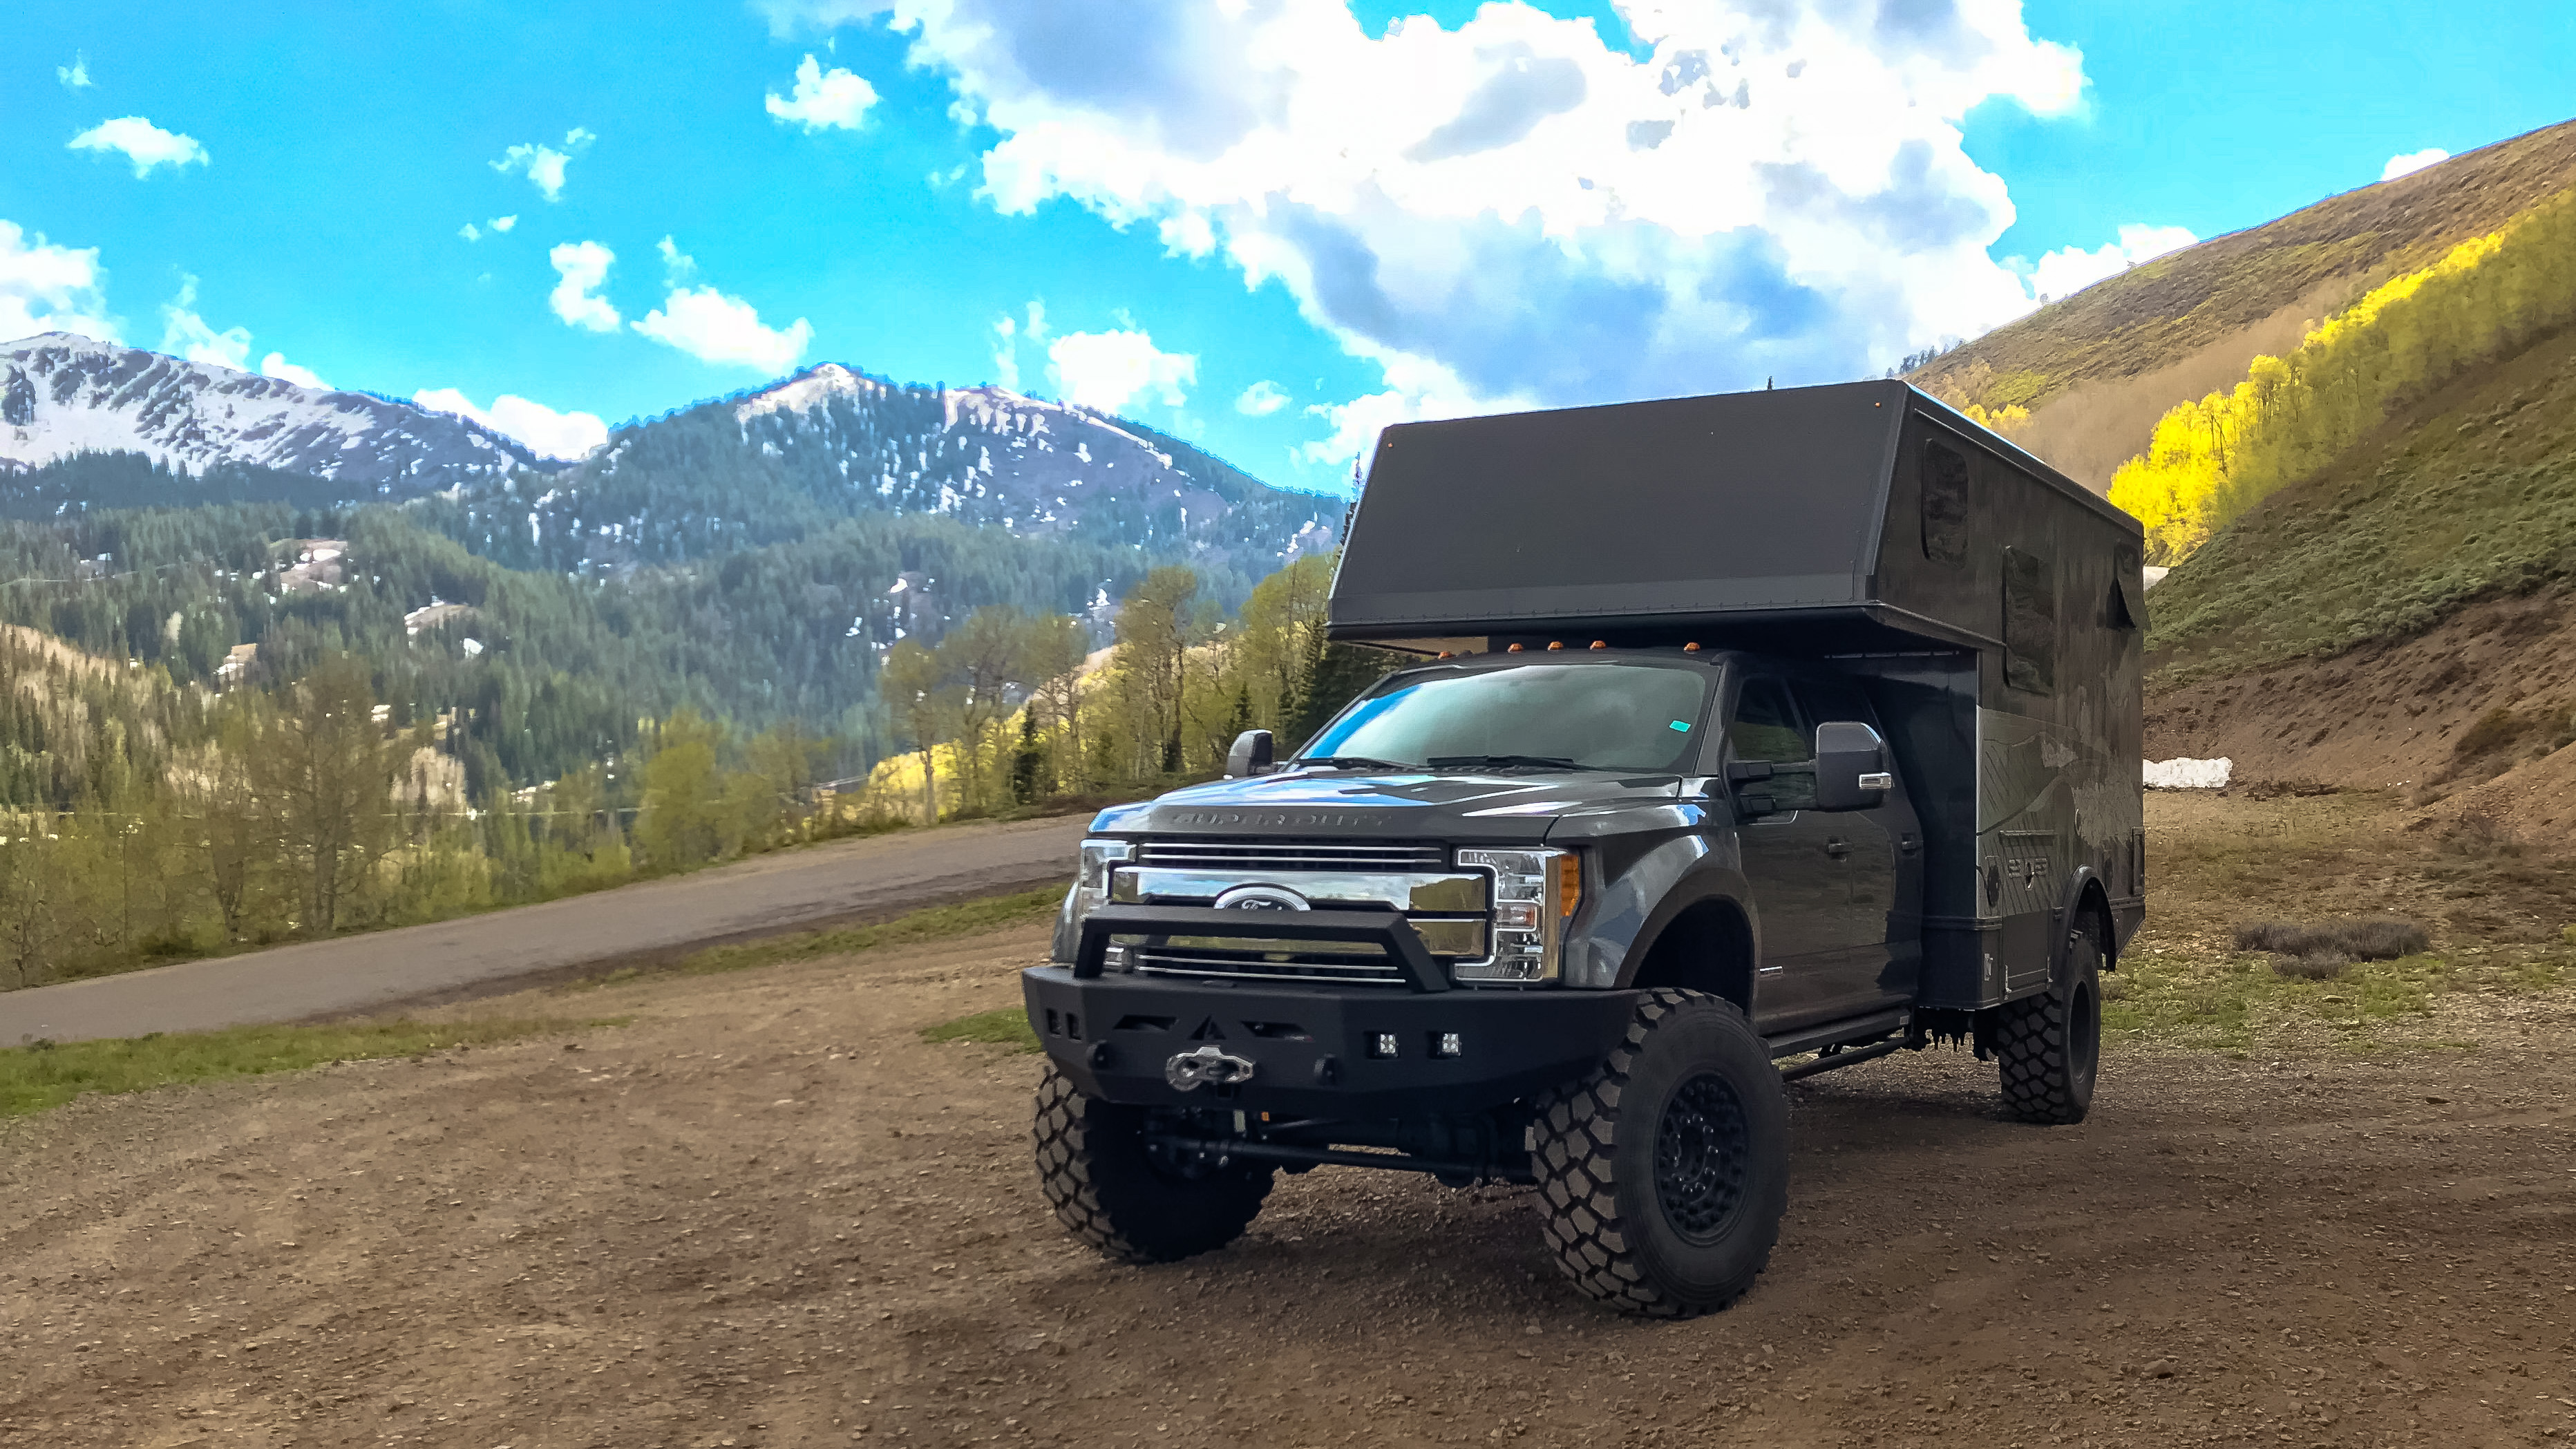 Expedition Portal Classifieds: Basecamp F550